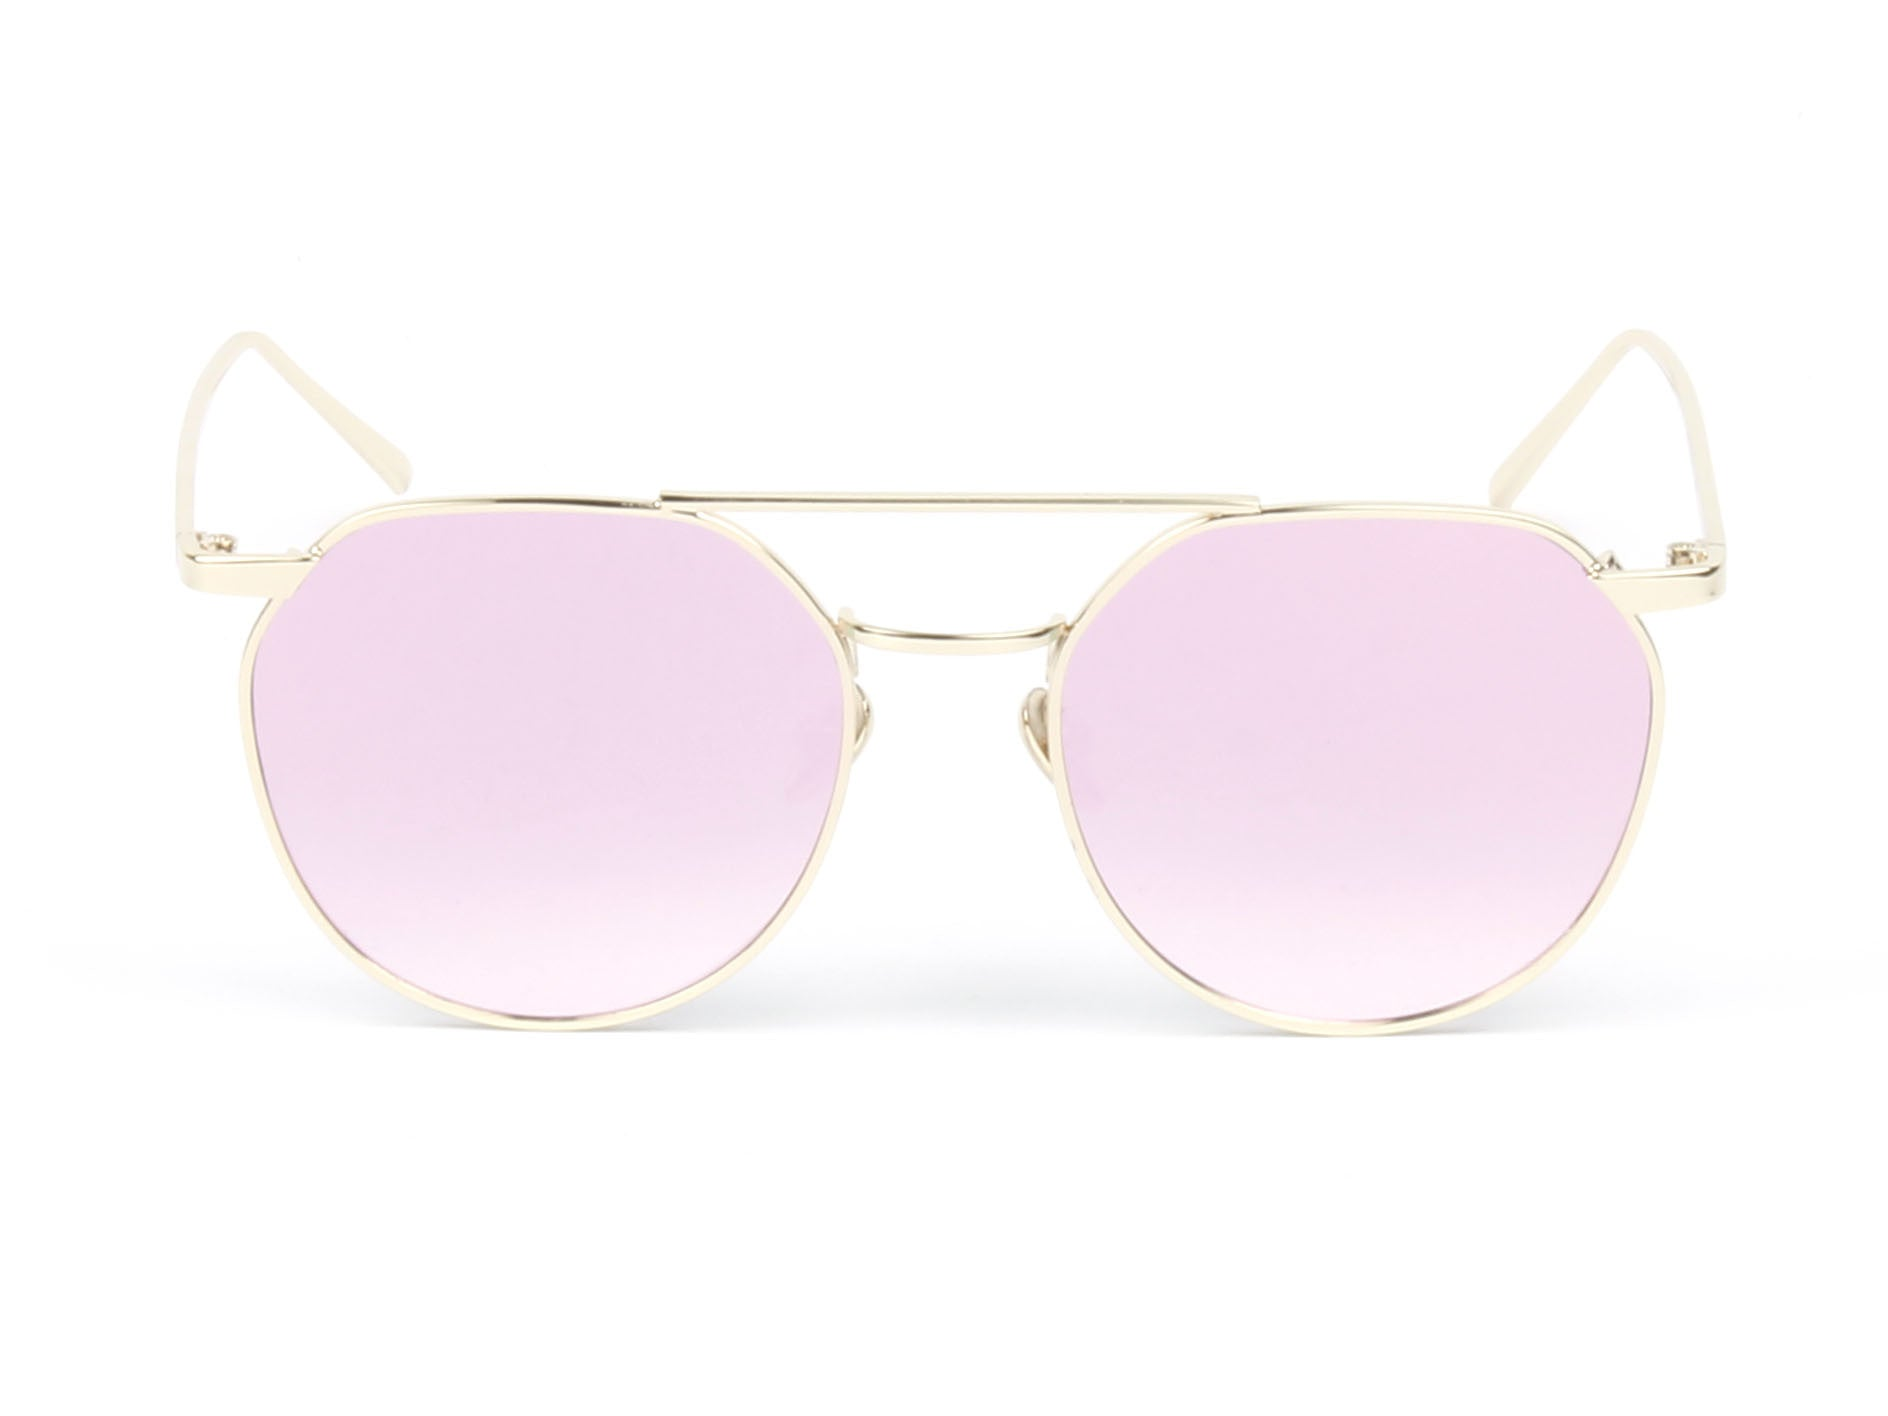 D63 - Vintage Round Mirrored Flat Lens Sunglasses - Wholesale Sunglasses and glasses